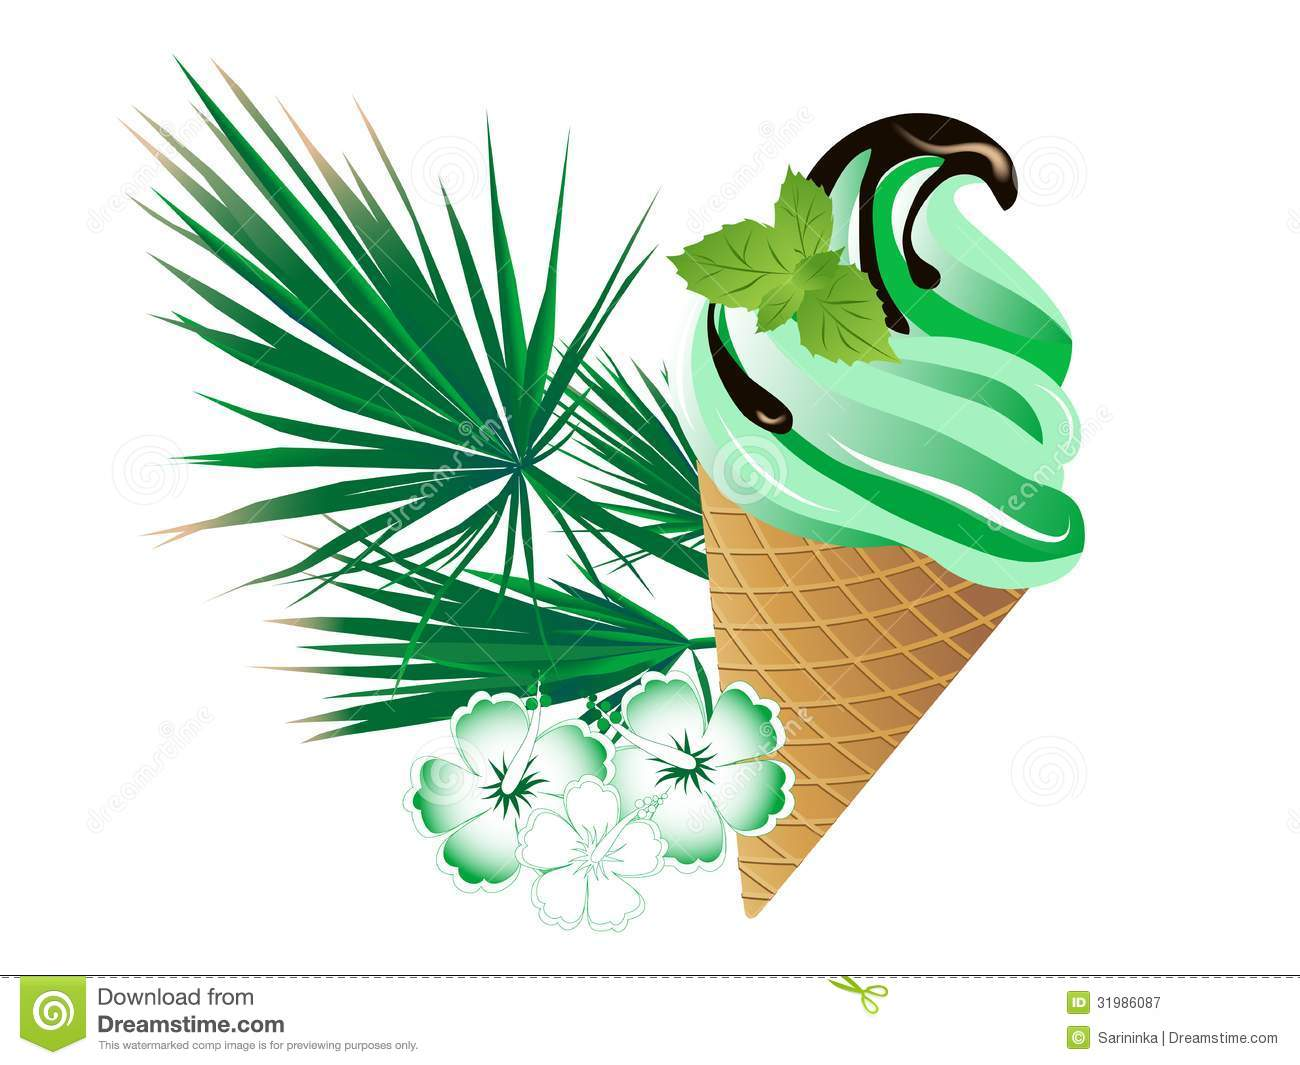 Mint Ice Cream Royalty Free Stock Photography - Image: 31986087